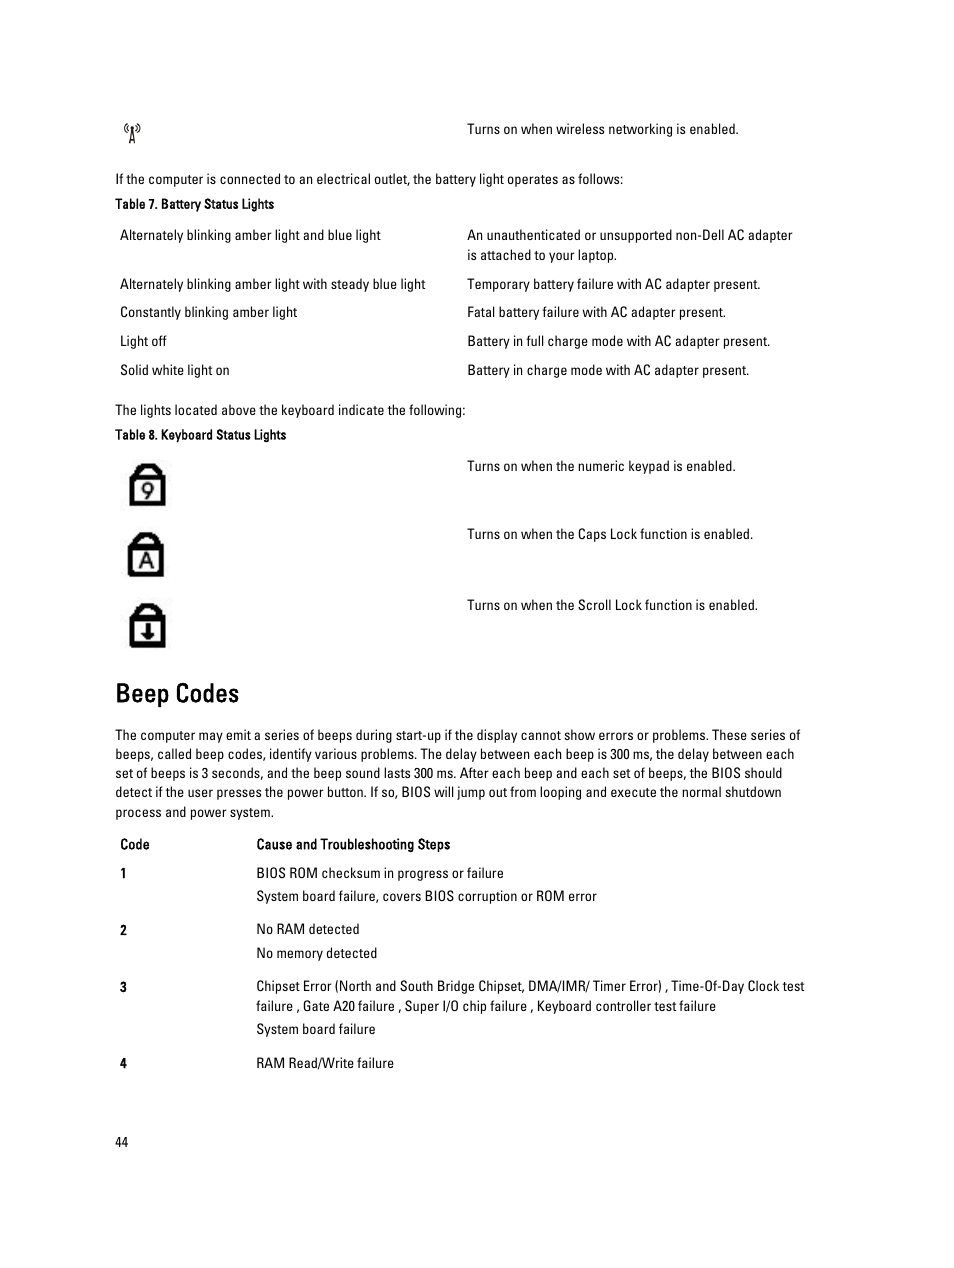 Beep codes | Dell Vostro 2521 (Early 2013) User Manual | Page 44 / 53